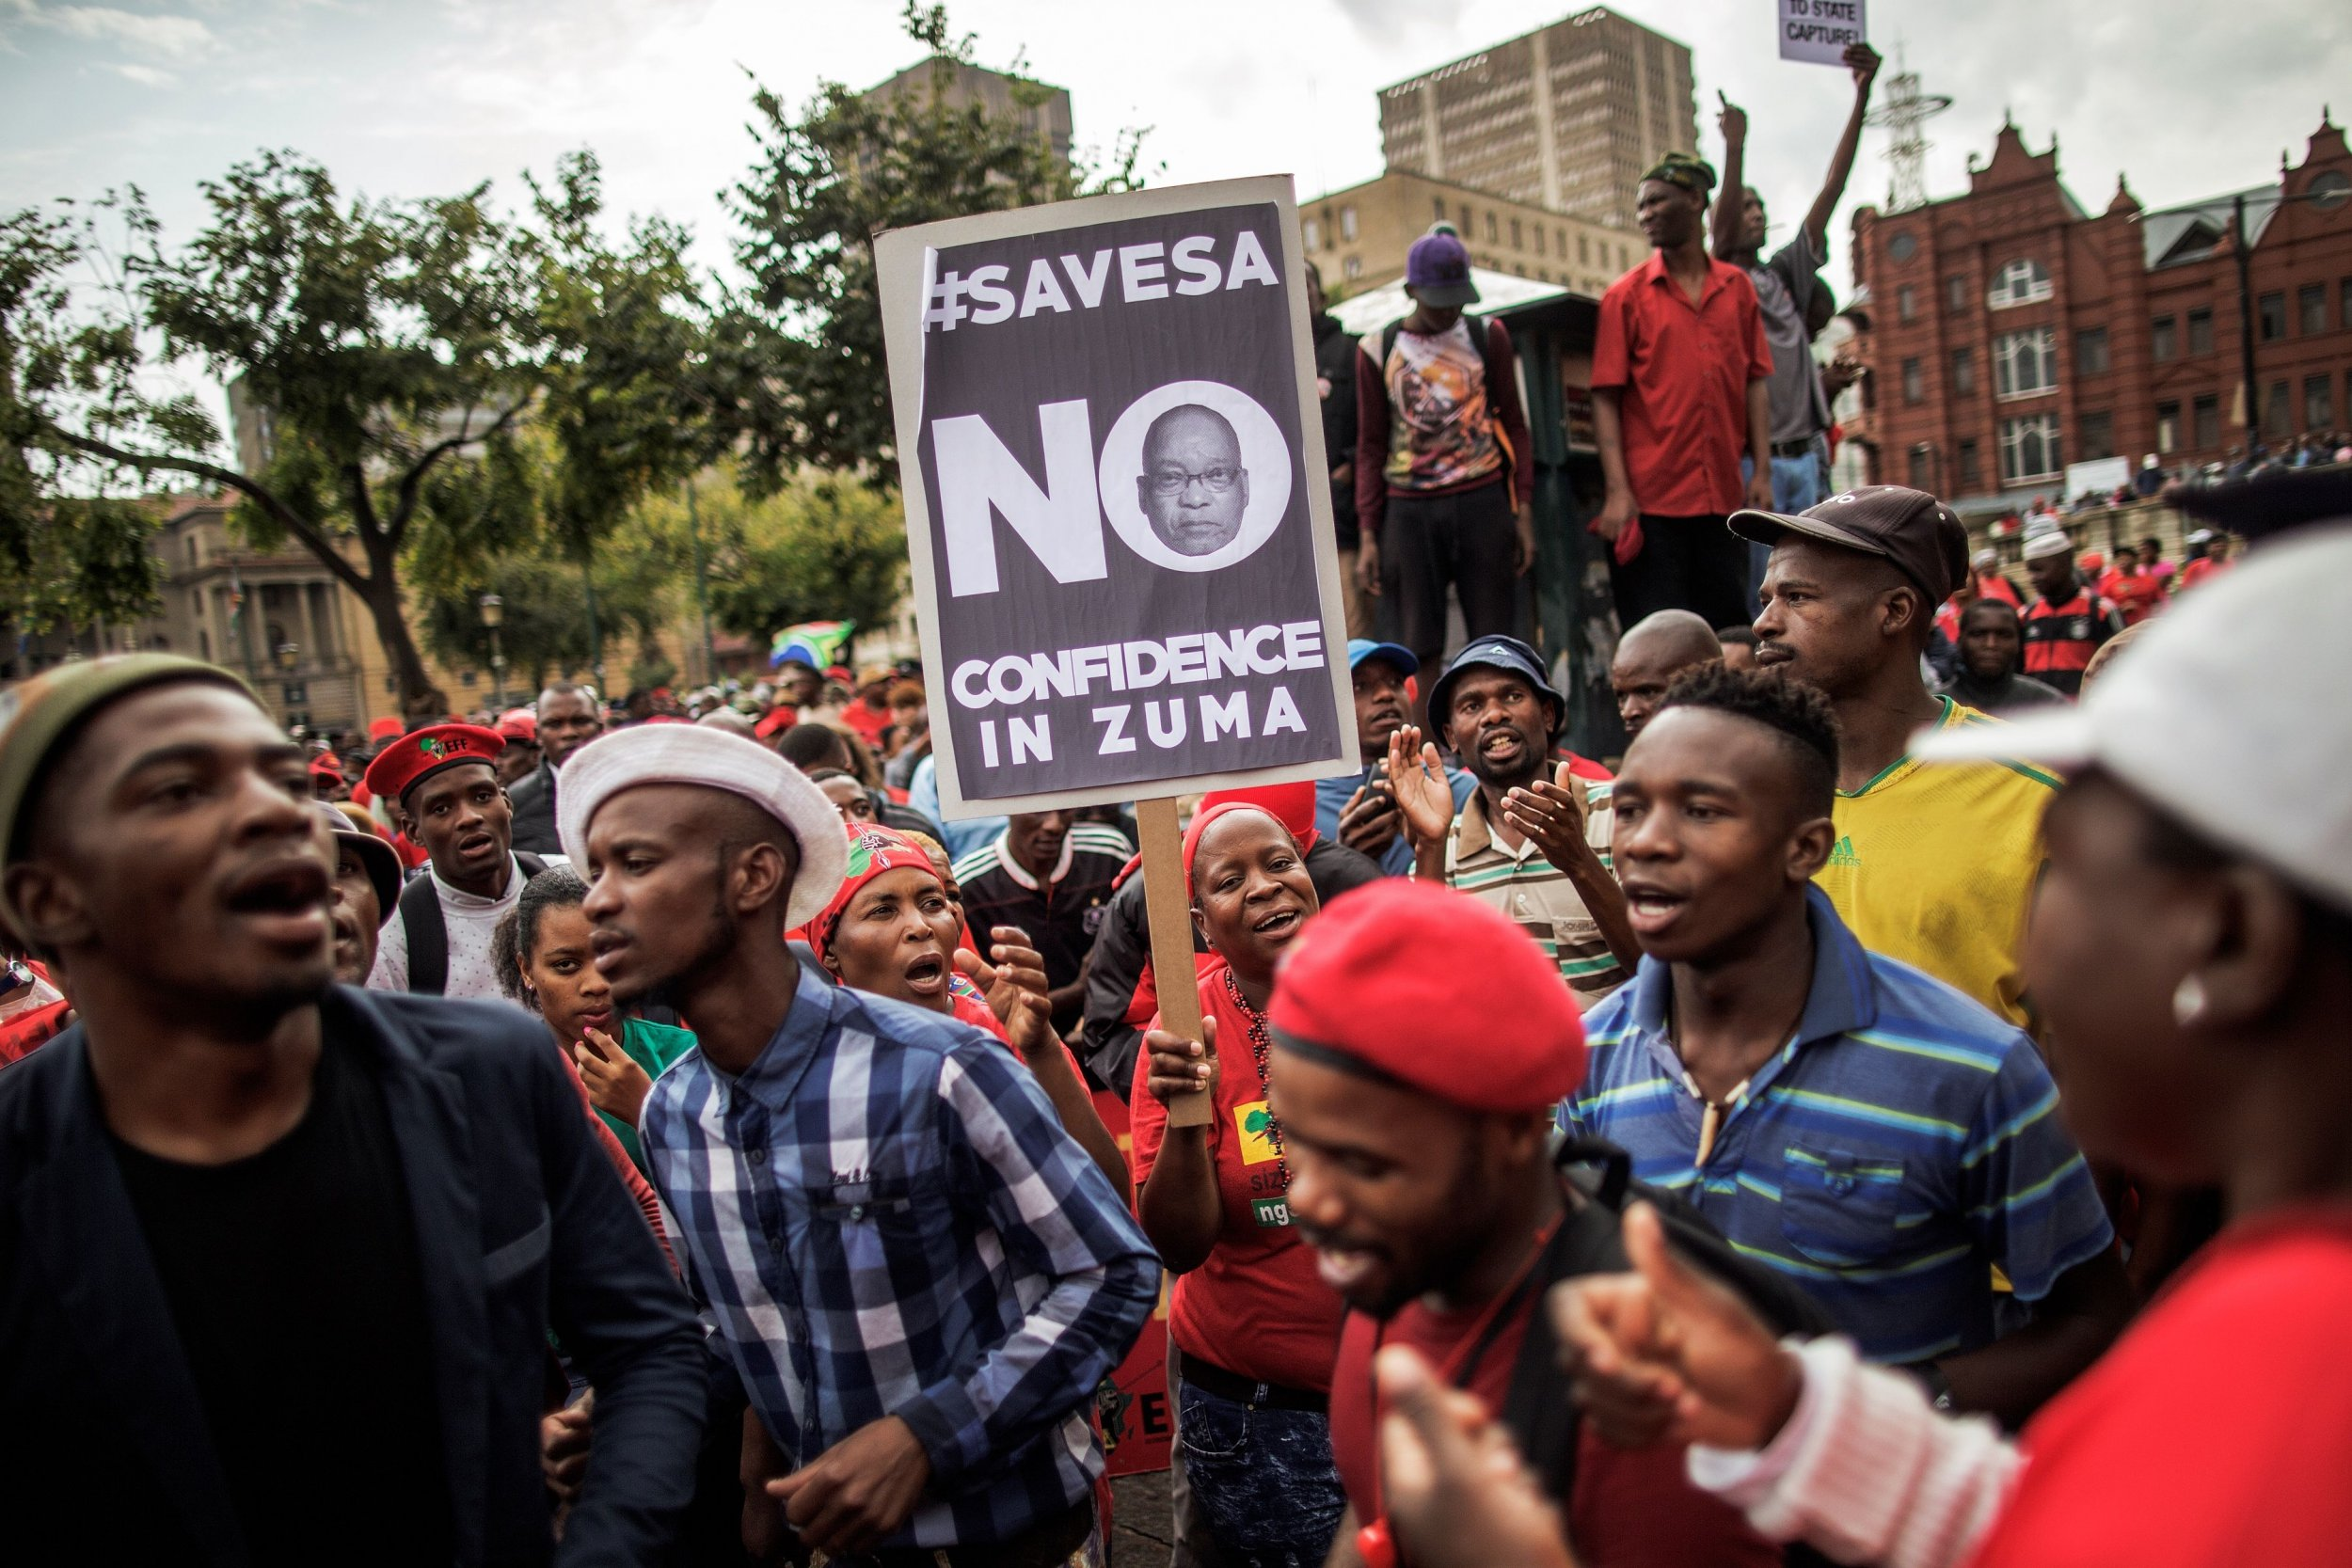 South Africa Zuma protest